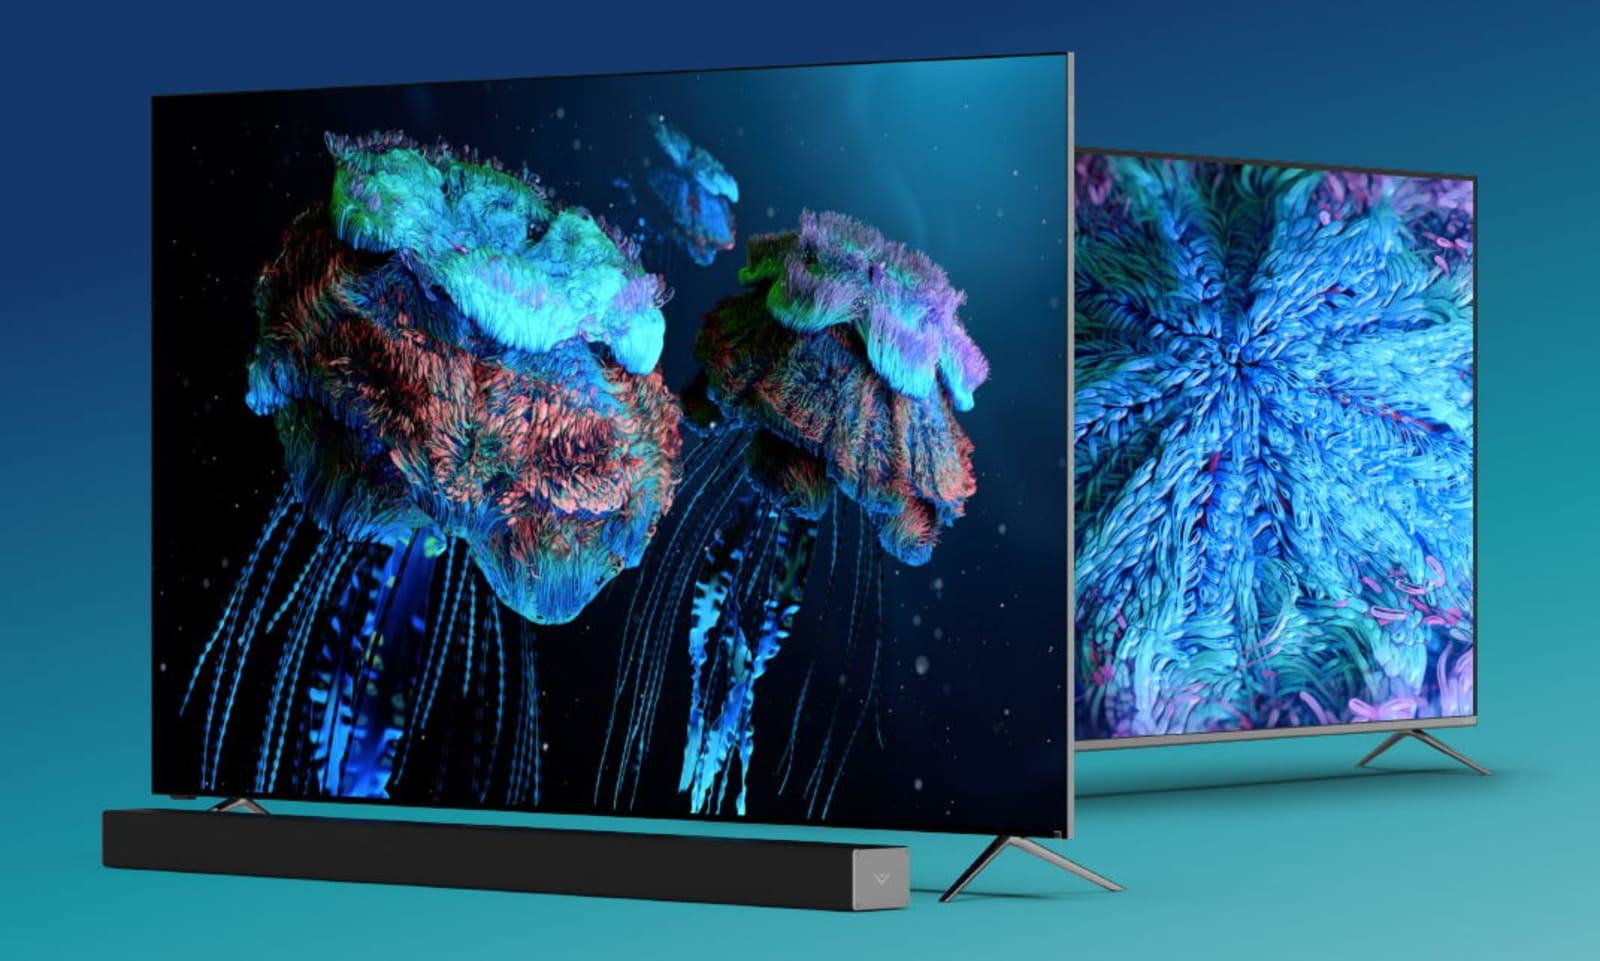 Vizio's 2019 4K TVs arrive with promise of AirPlay 2 and